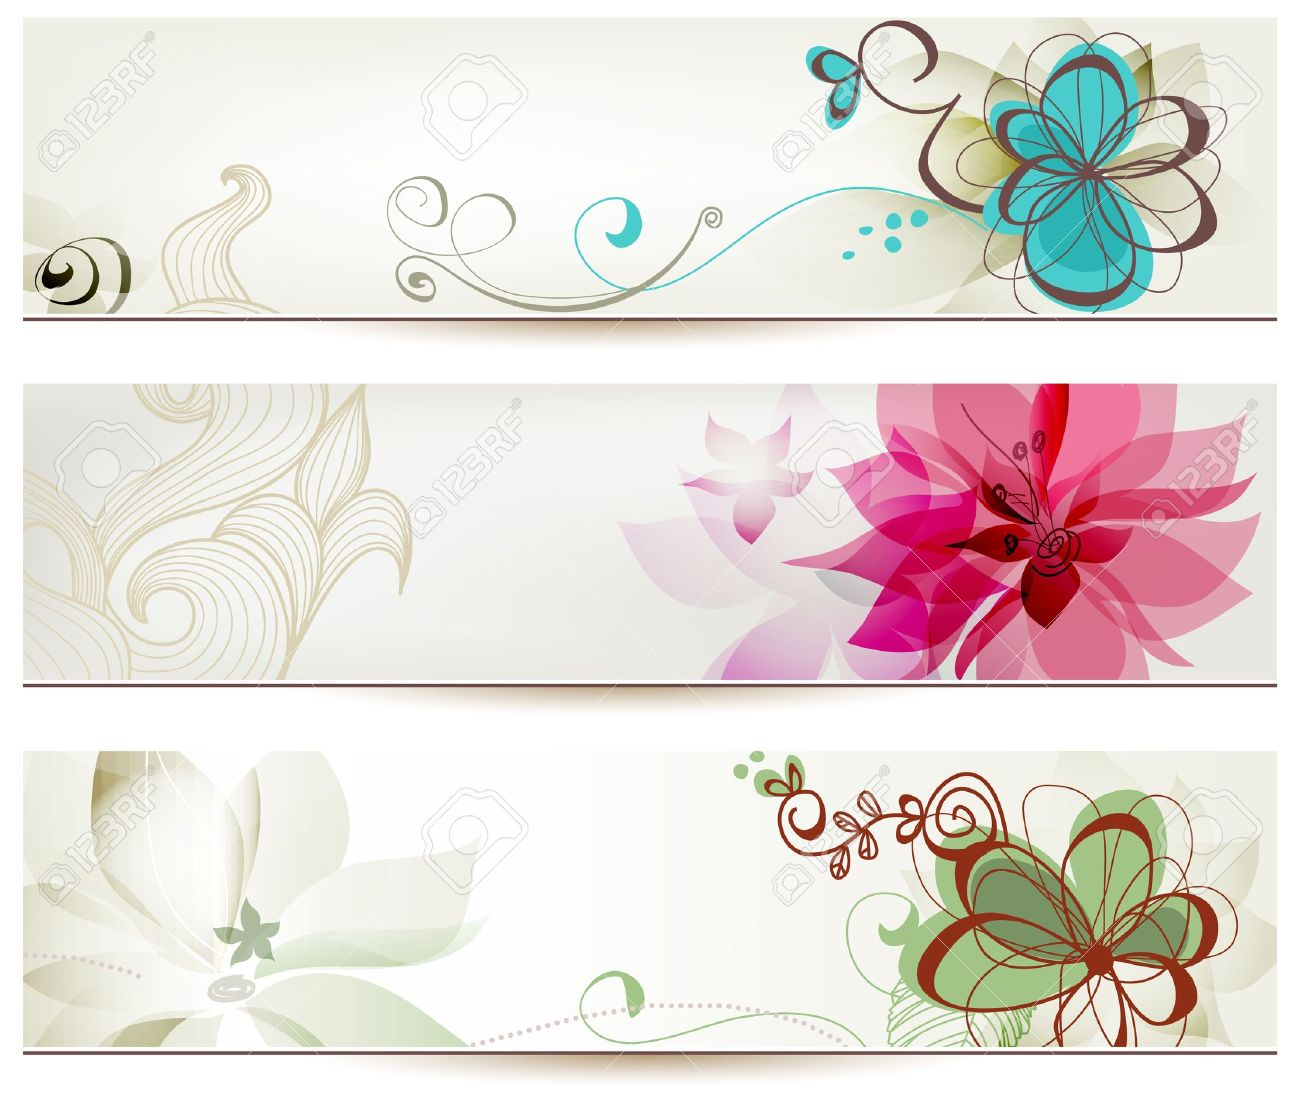 Floral banners in retro style - 14238583